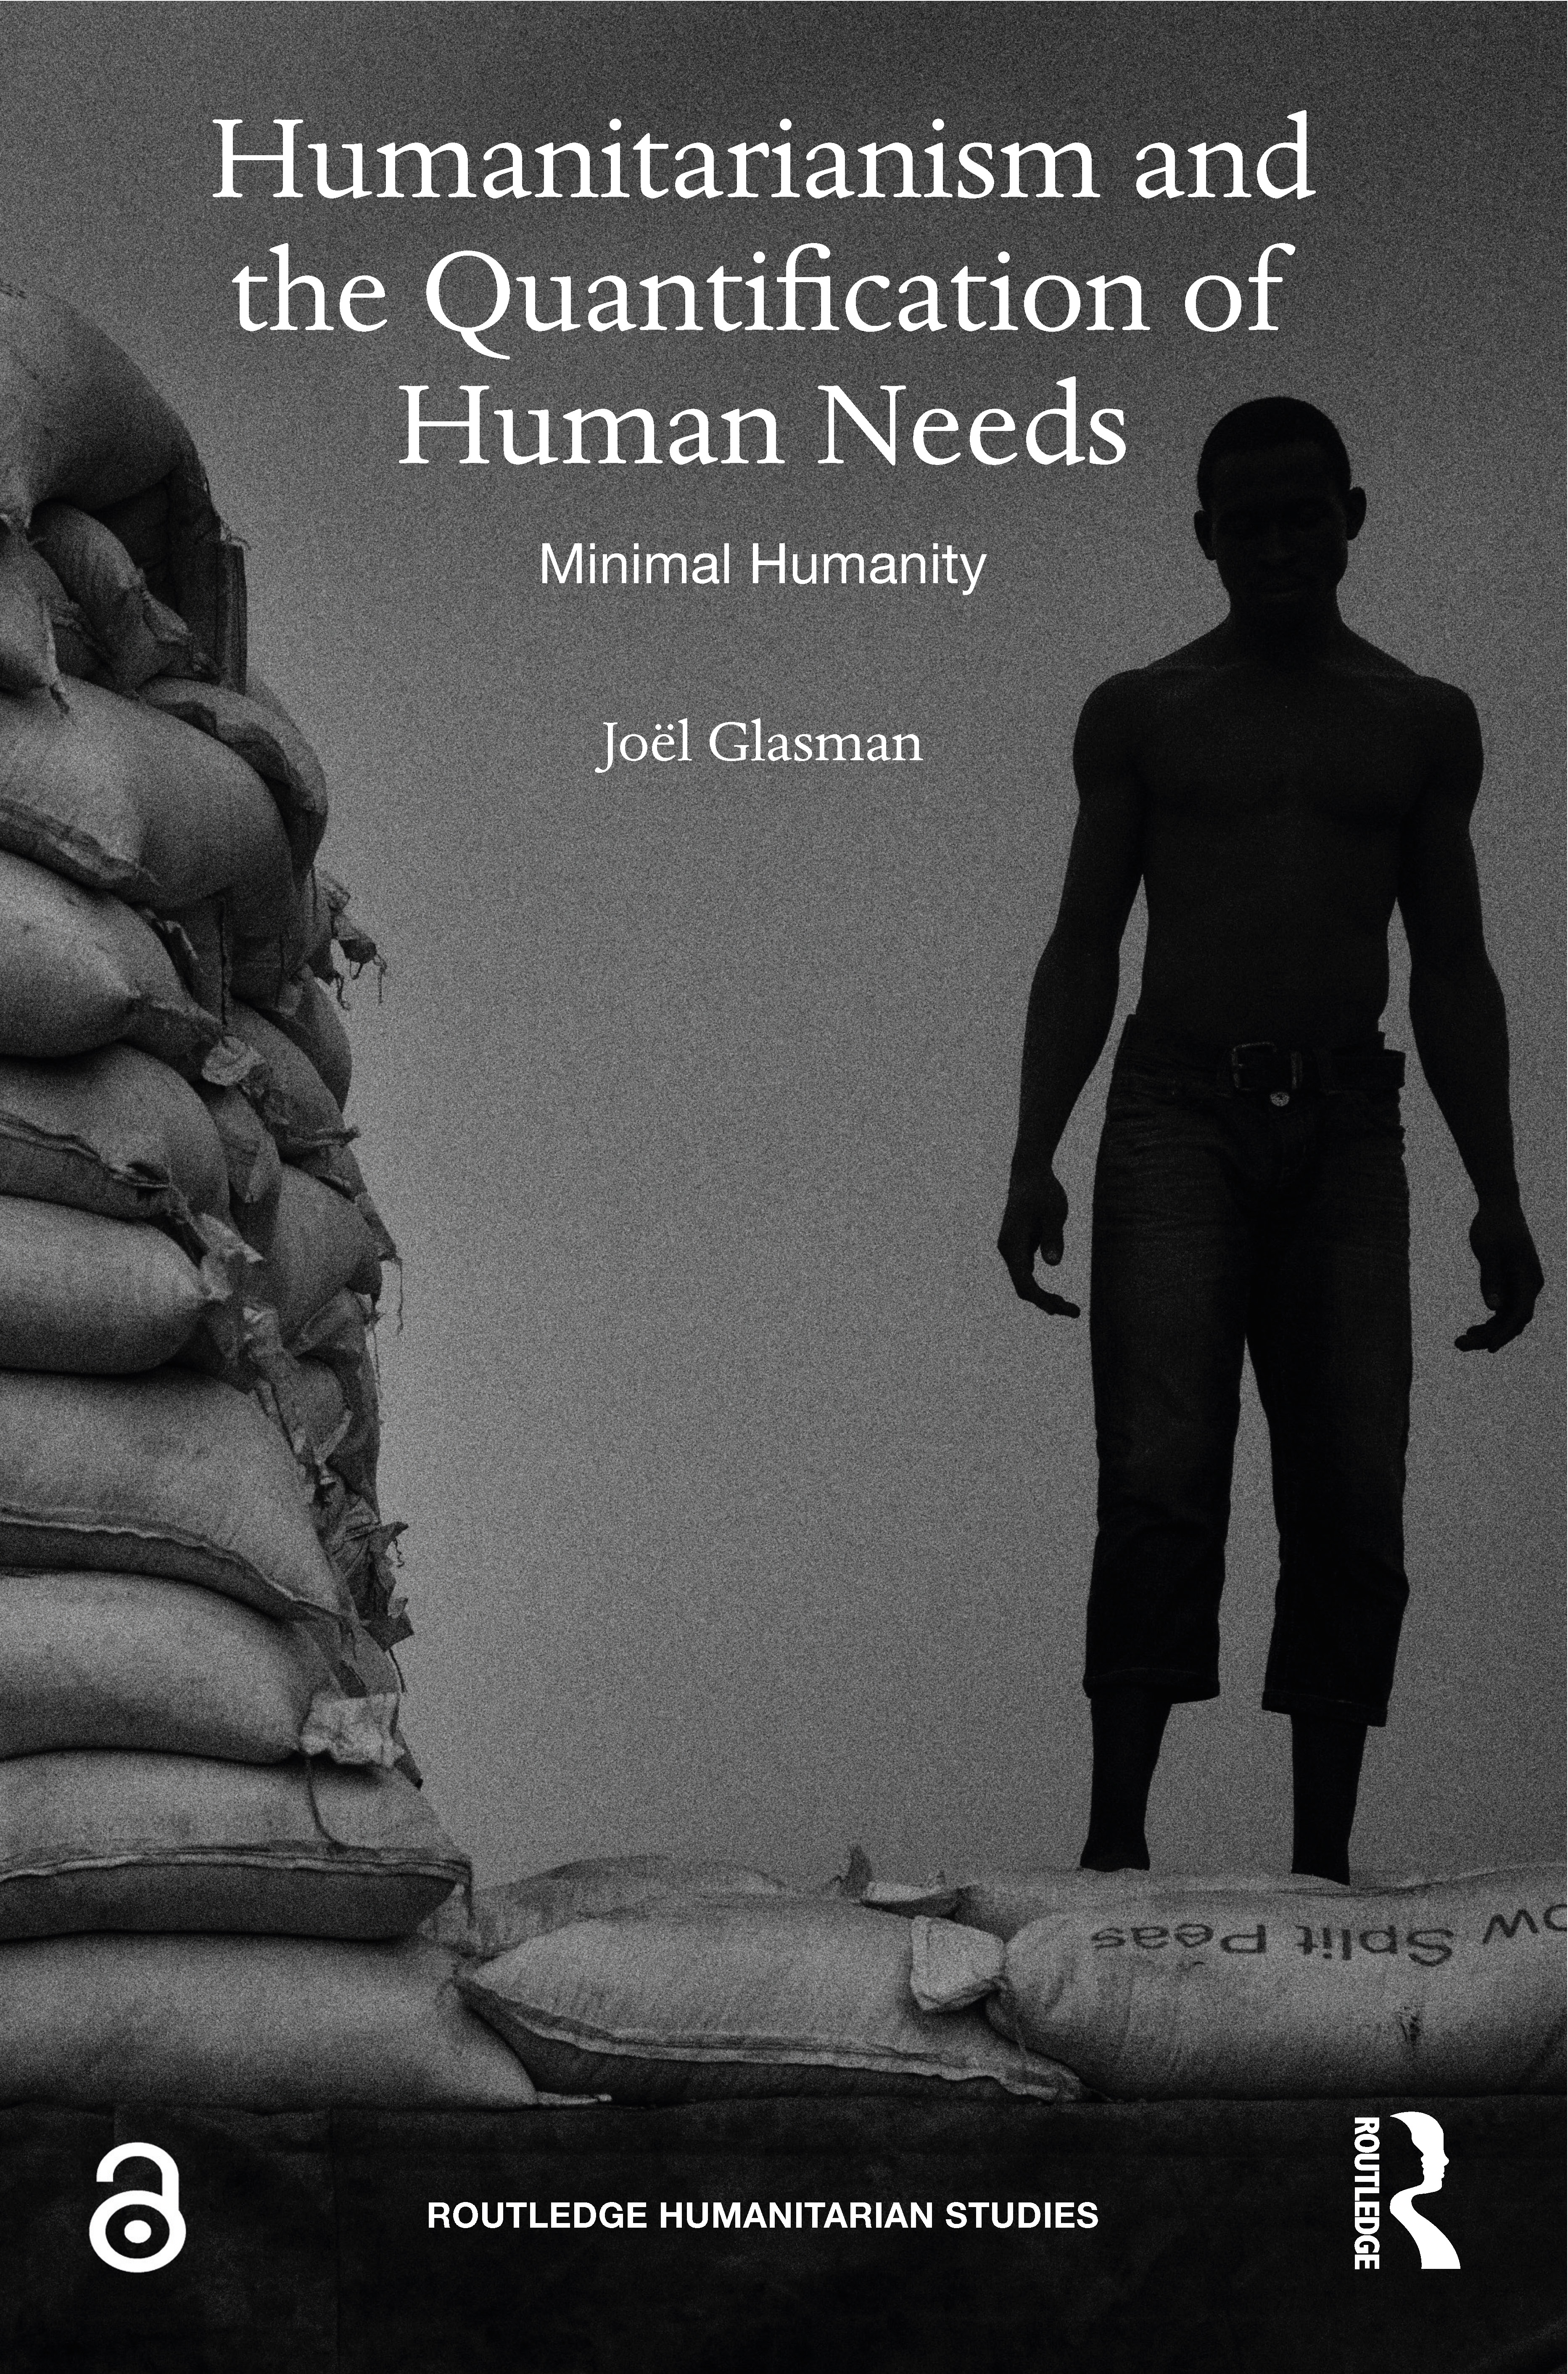 Humanitarianism and the Quantification of Human Needs: Minimal Humanity book cover